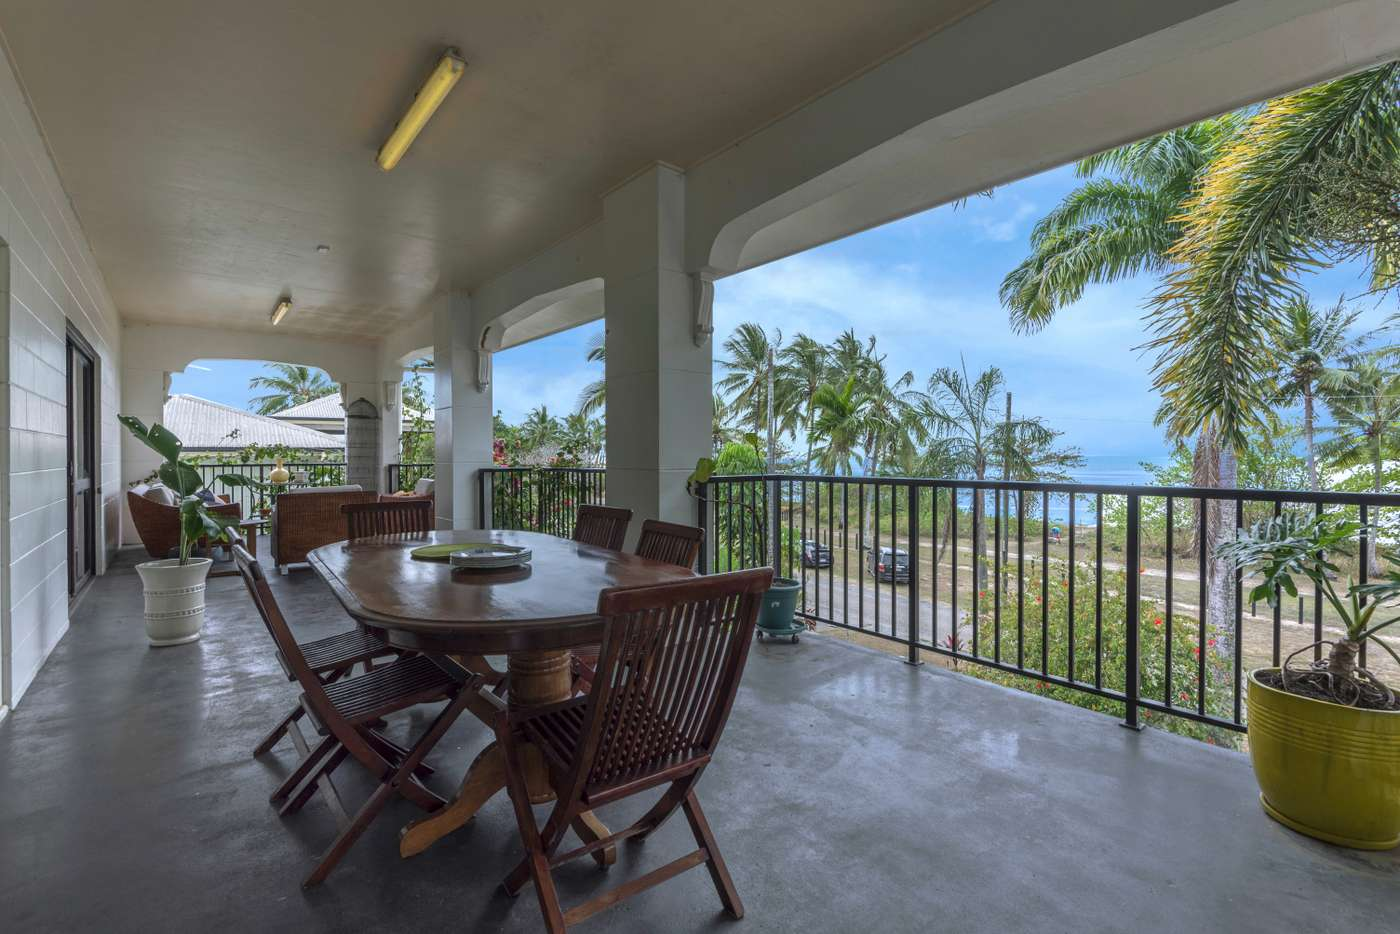 Main view of Homely house listing, 9 Bougainvillea St, Cooya Beach QLD 4873